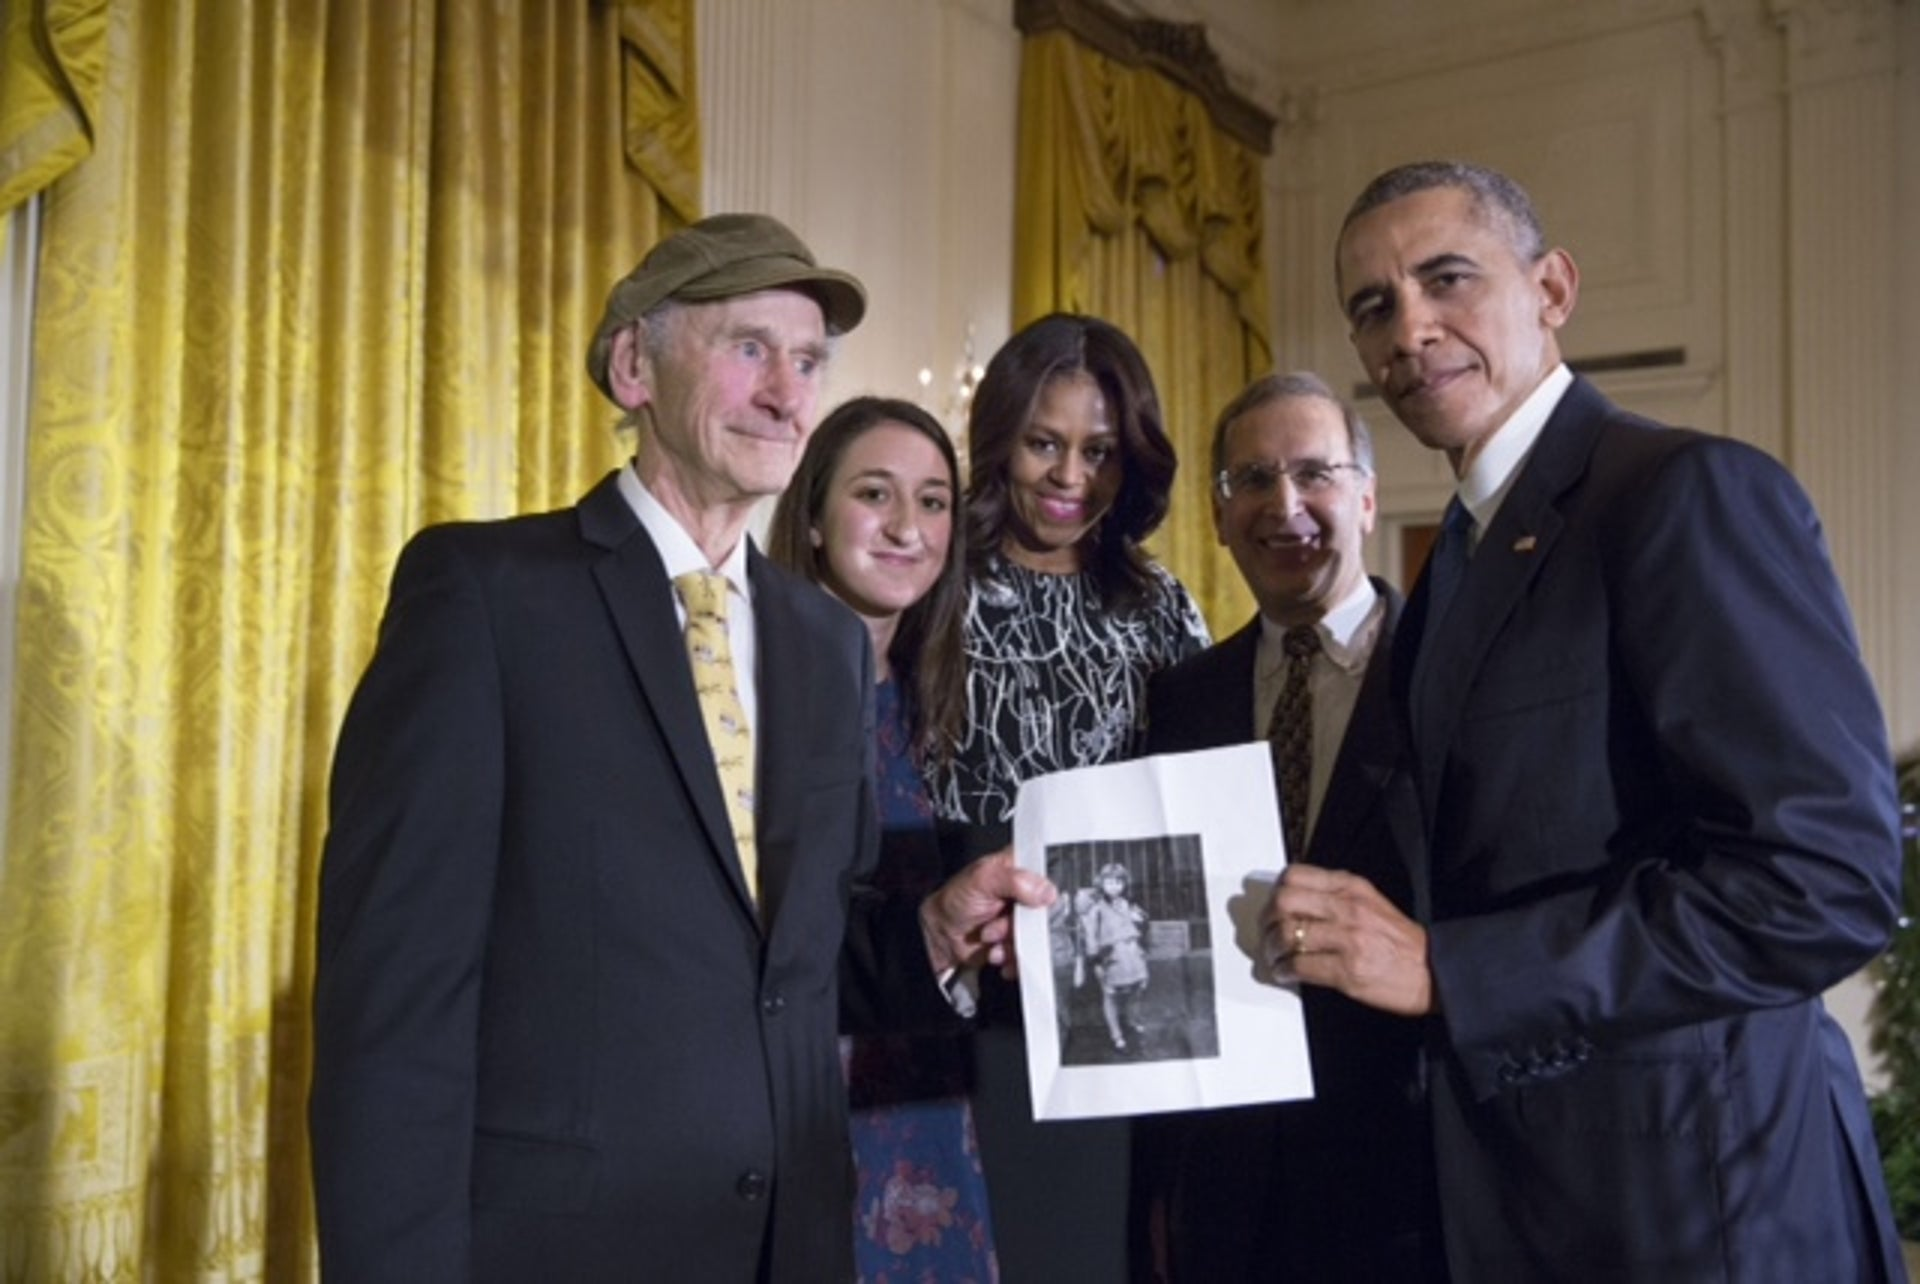 Manny Lindenbaum with a picture of his sister Ruth, his granddaughter Lauren,  Rabbi Sid Schwartz of CLAL and the Obamas at the White House.